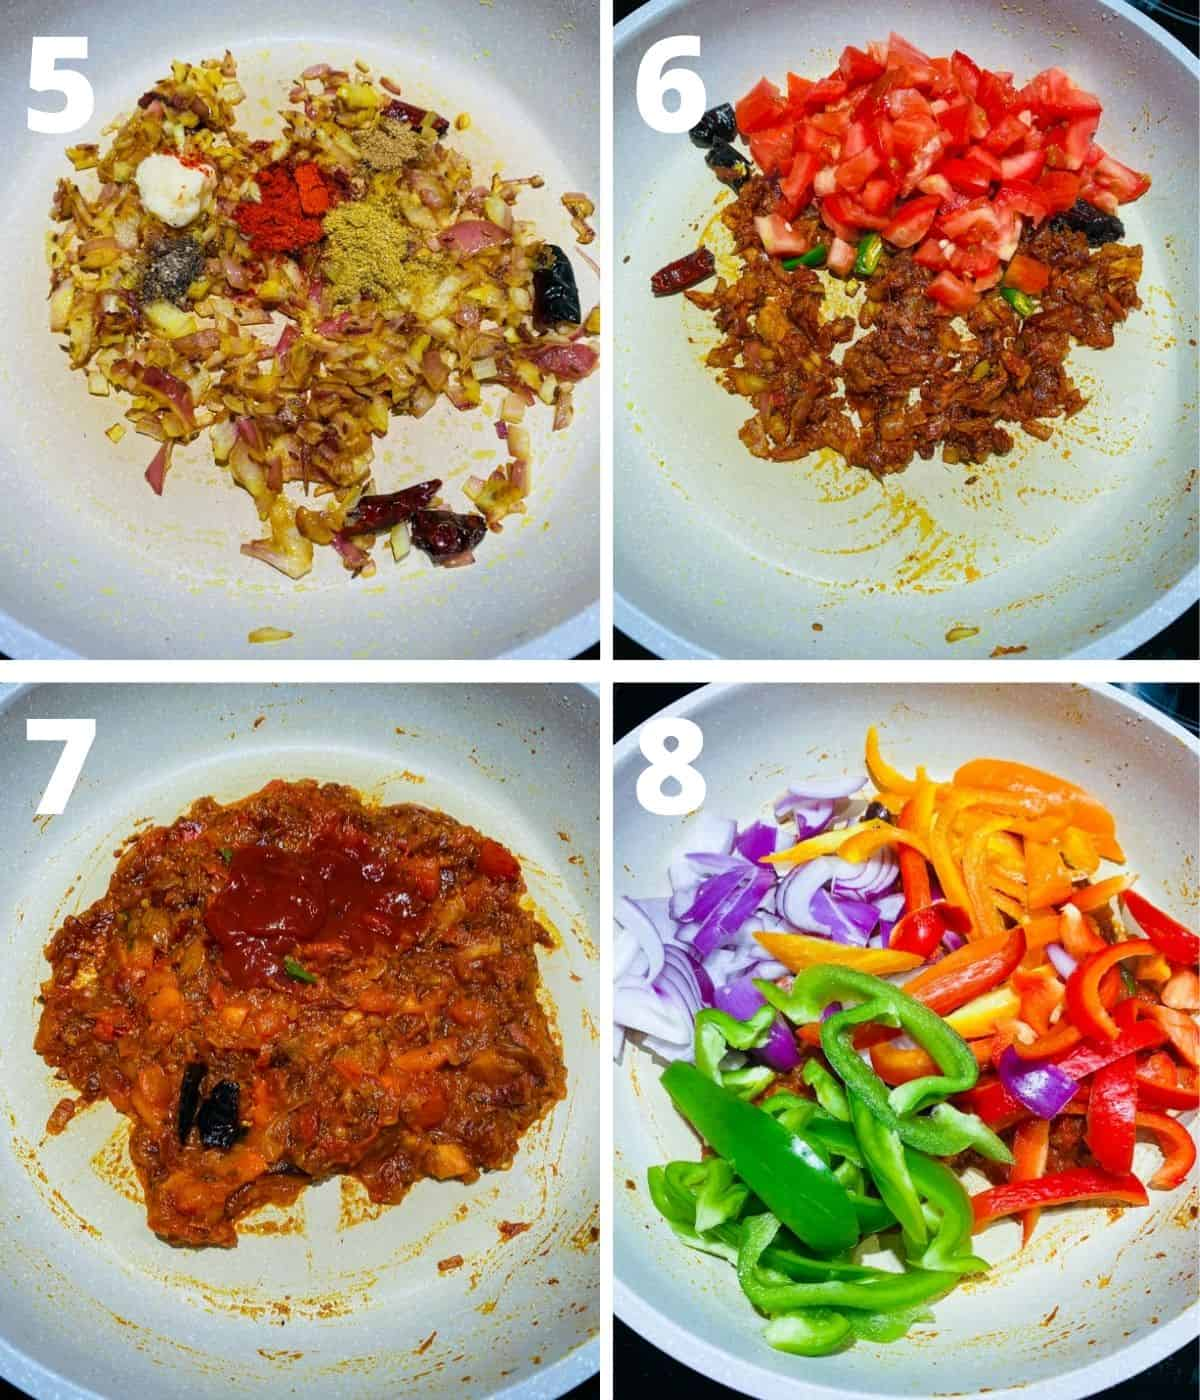 Step by Step picture collage of How to make Paneer Jalfrezi. This collage covers steps until adding vegetable strips.